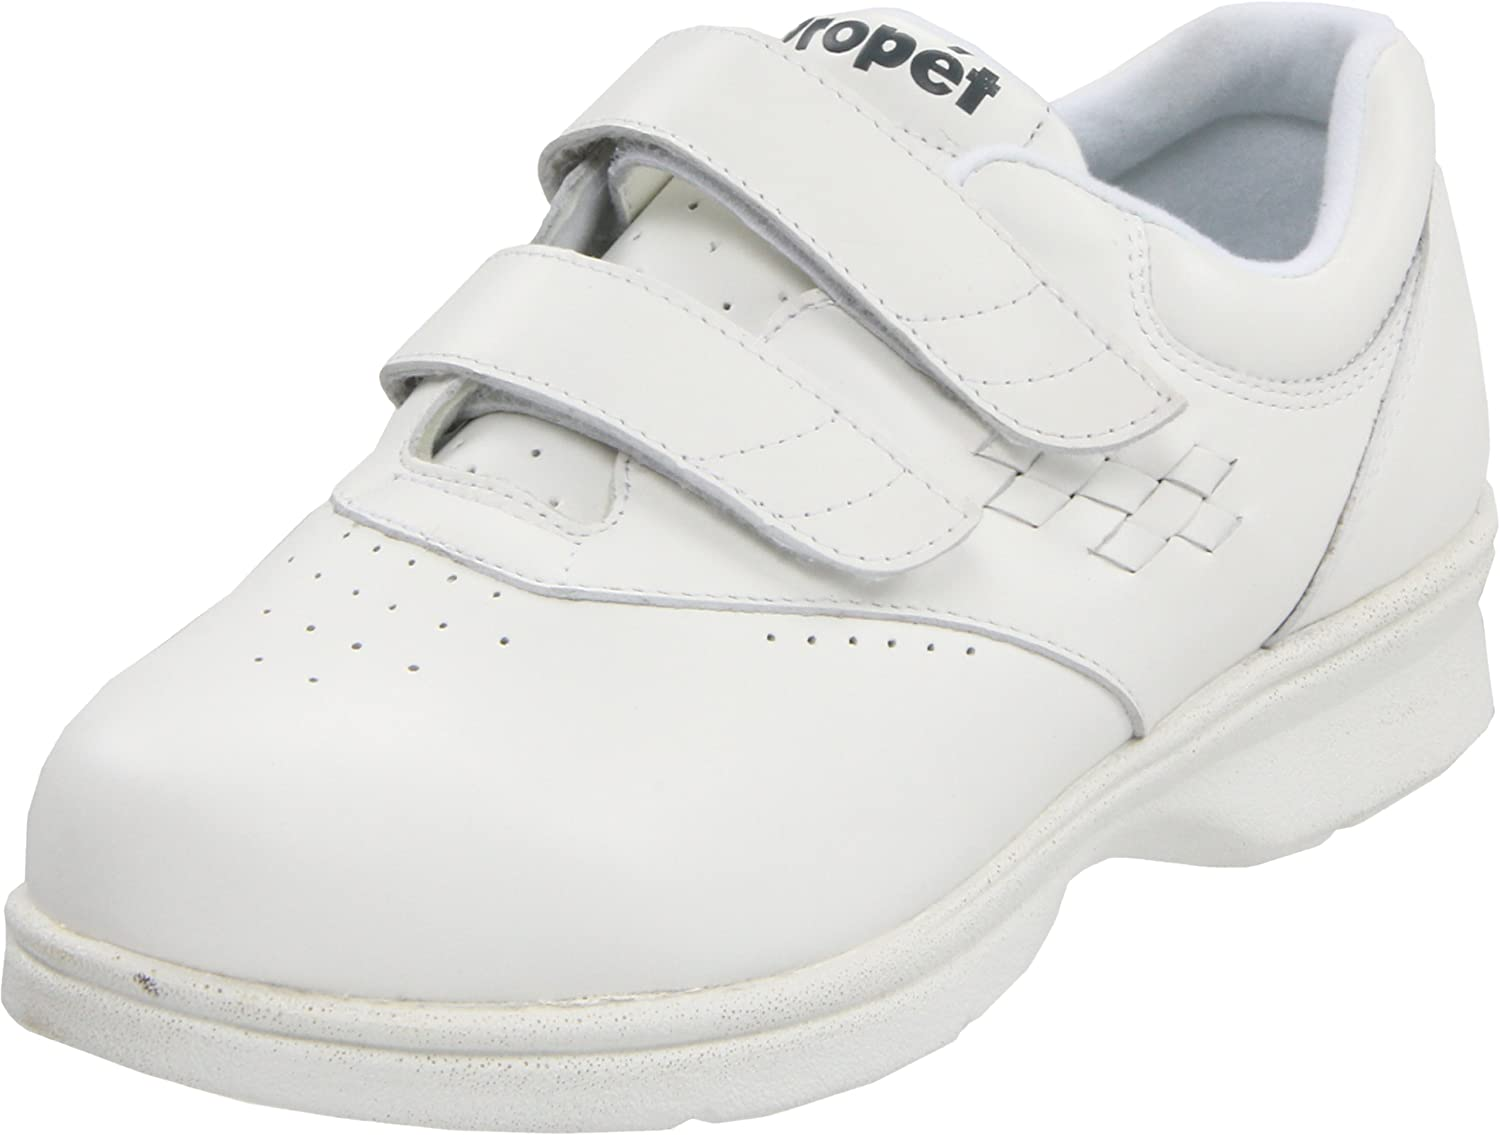 Propet Women's Vista Strap Sneaker B000BO9XEO 8.5 M (US Women's 8.5 B)|White Smooth